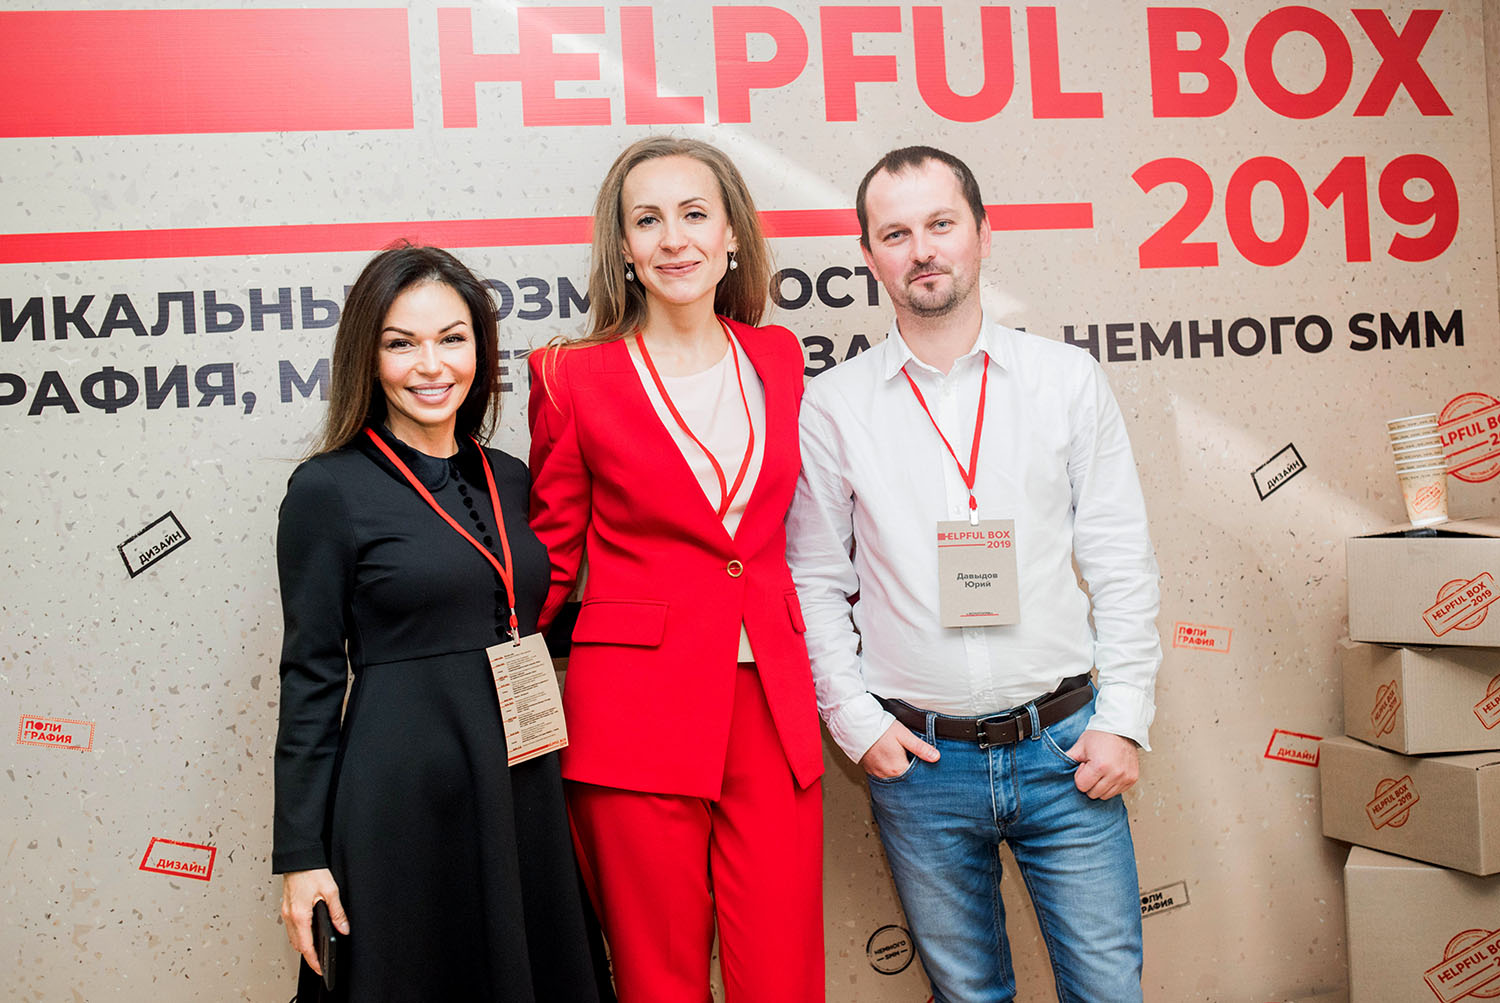 семинар helpfulbox 2019